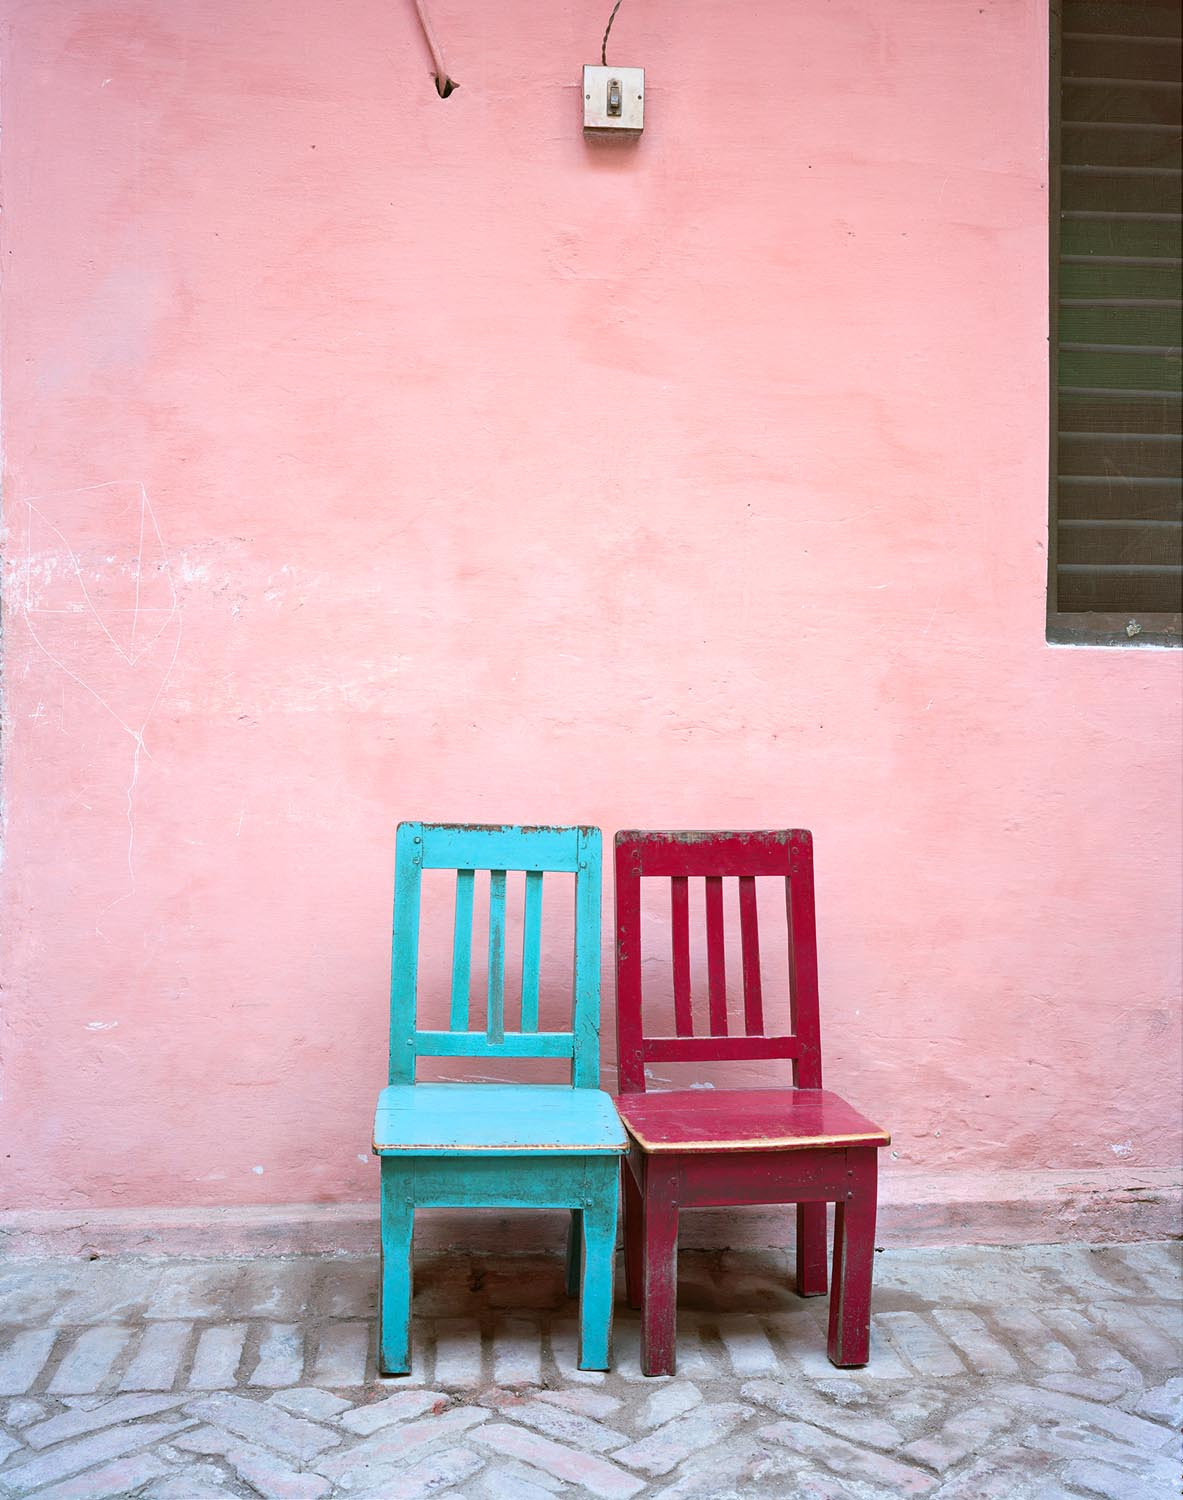 a-pink-dress-untitled-blue-red-chairs-2012